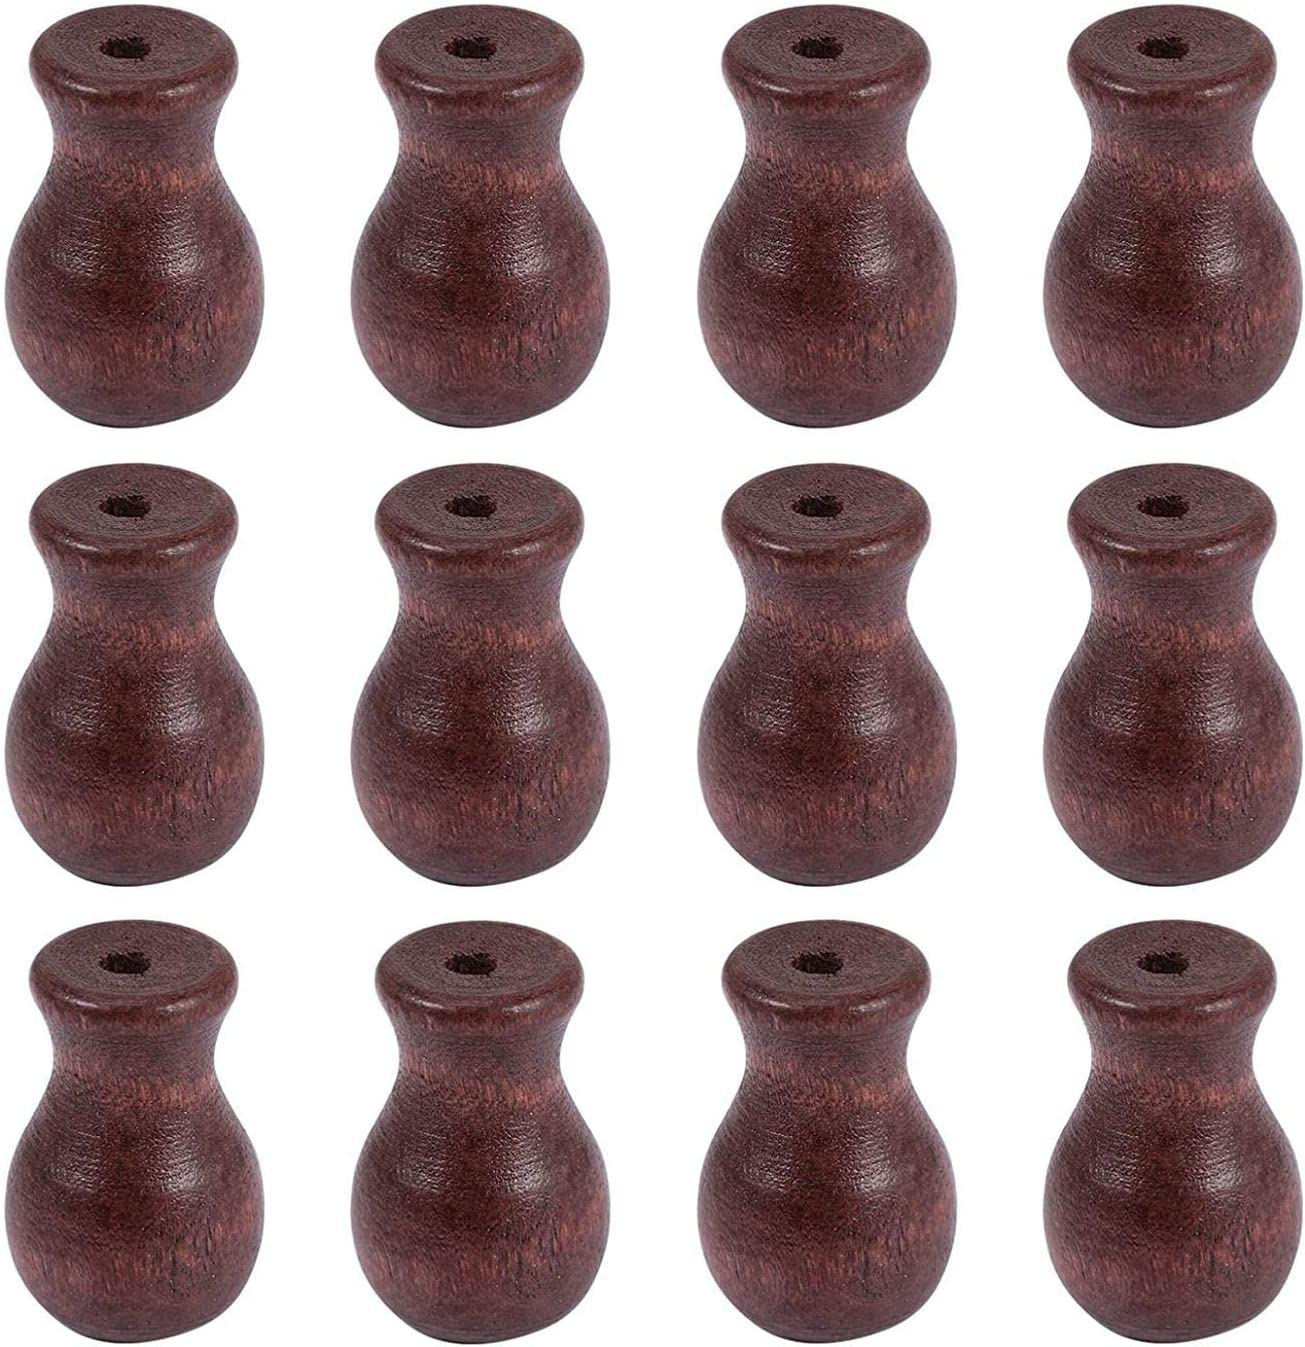 Exanko 12 Pack Window Large special price !! Blind Wood Hanging Knobs Wooden Cord Seasonal Wrap Introduction Ball